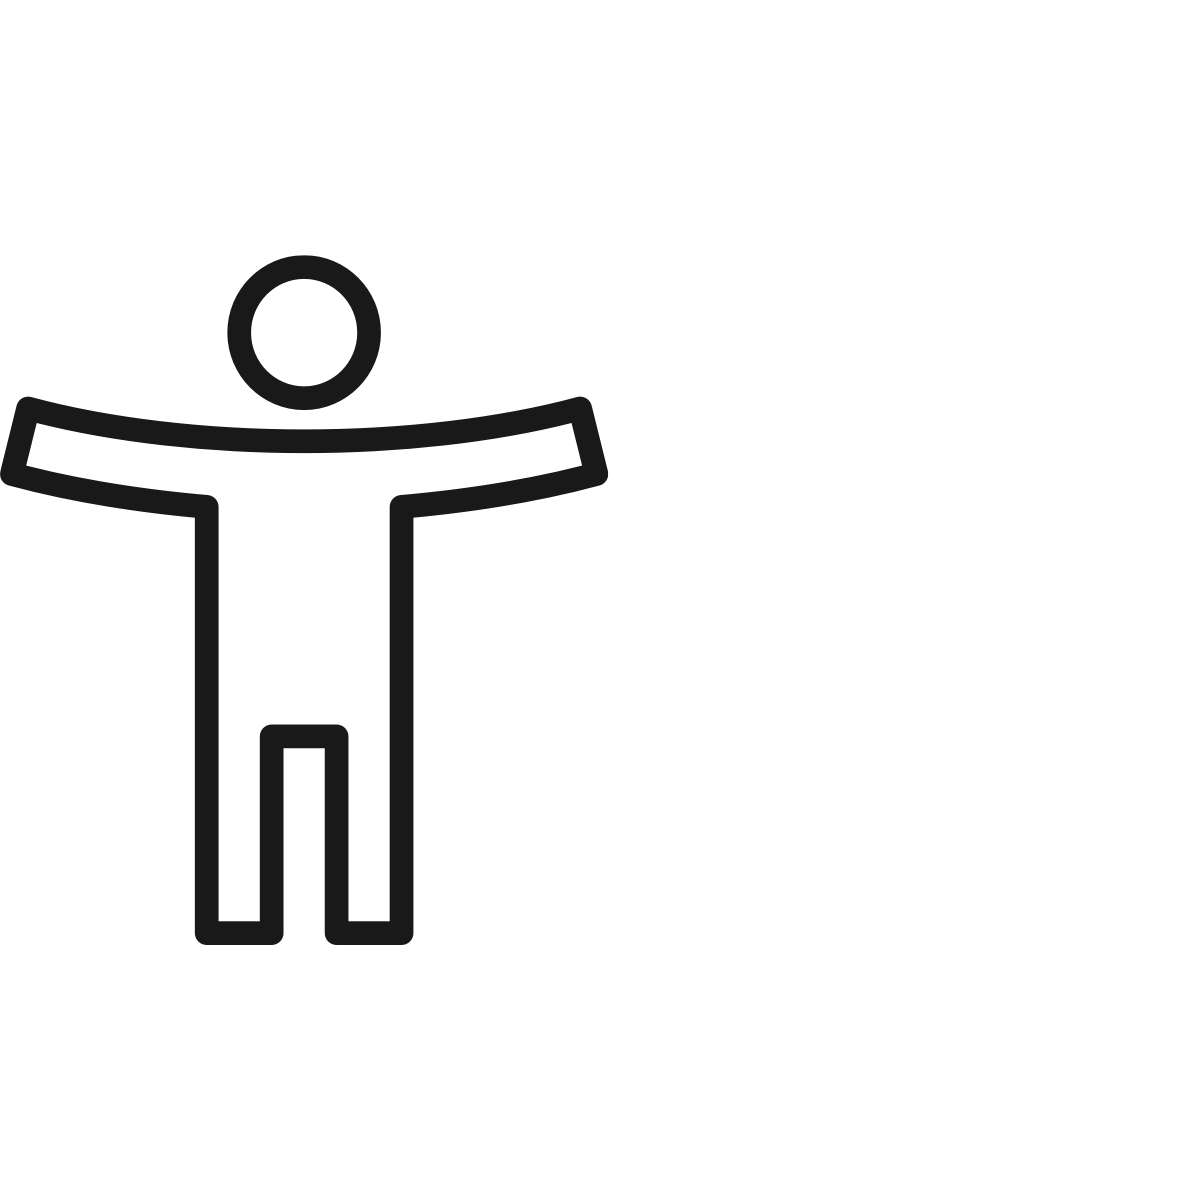 A black line drawing of a person with arms outstretched to represent the importance of human-centered design.